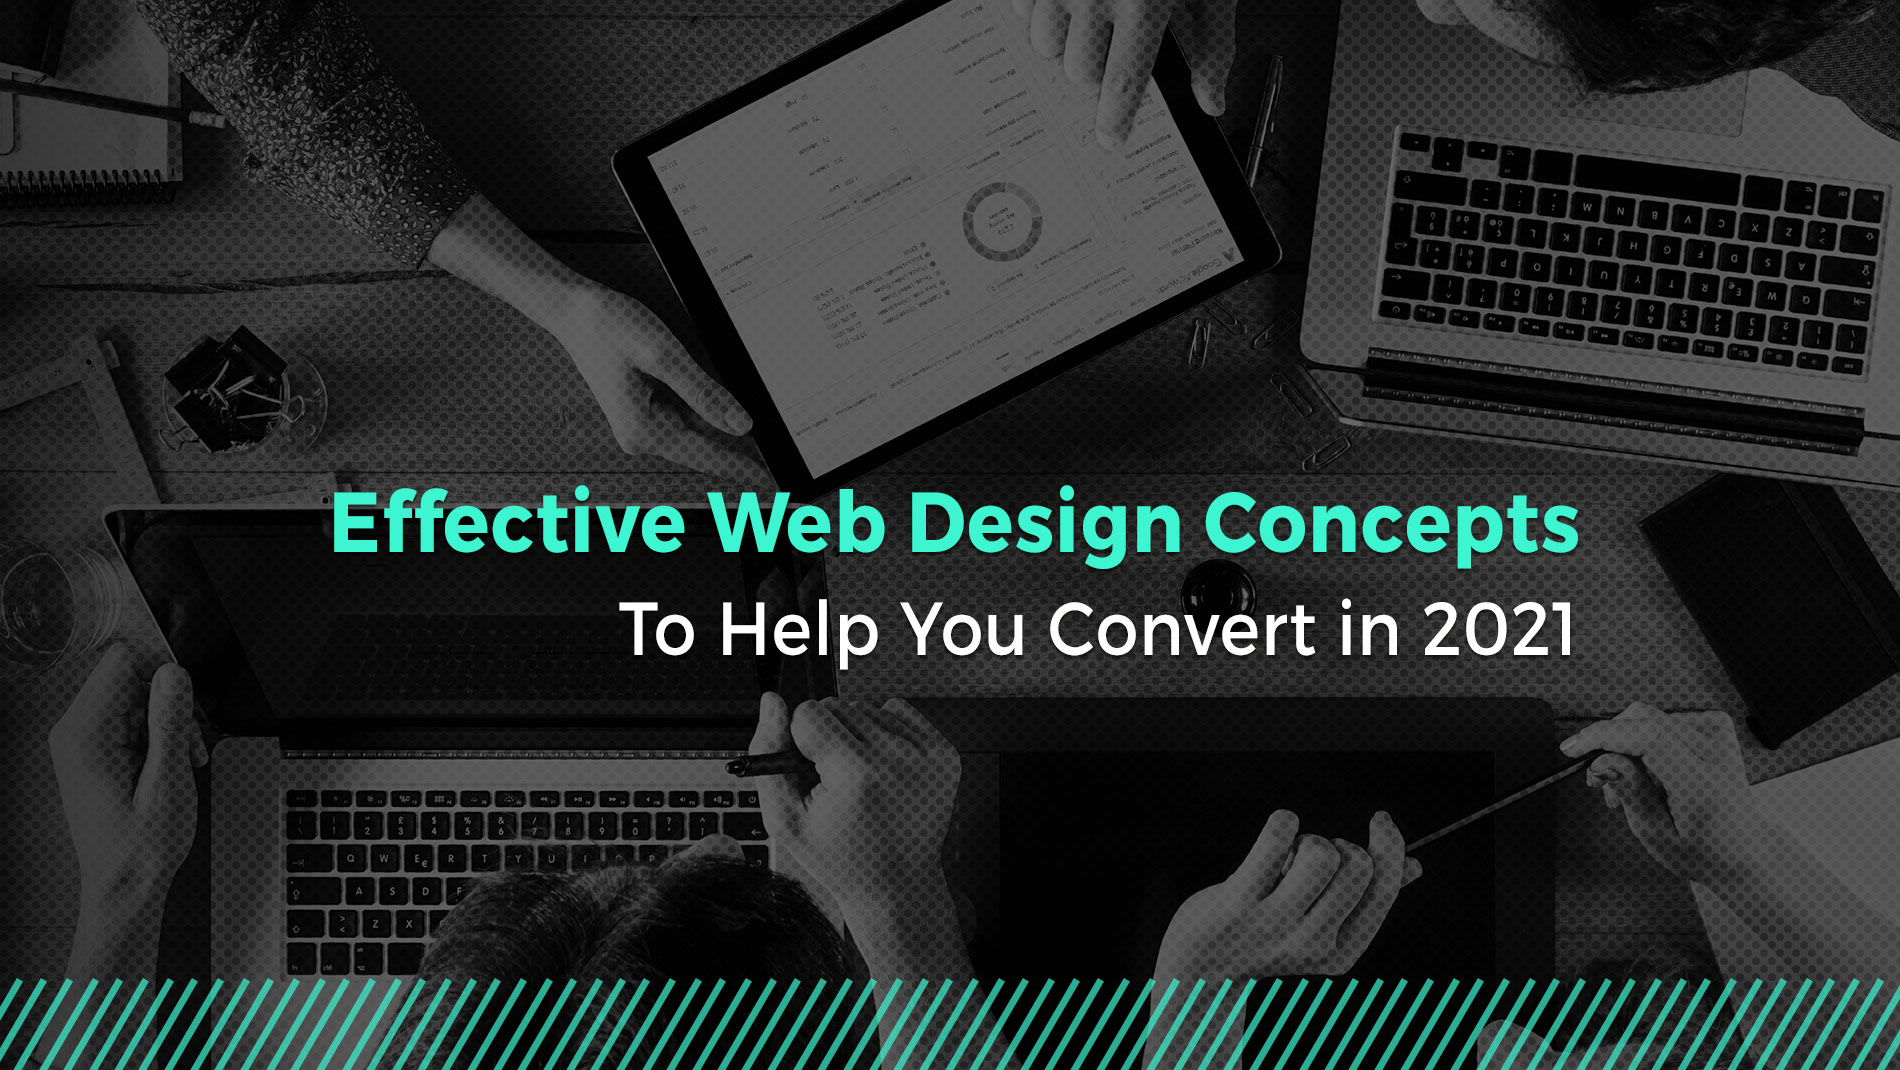 Effective Web Design Concepts to Help You Convert in 2021